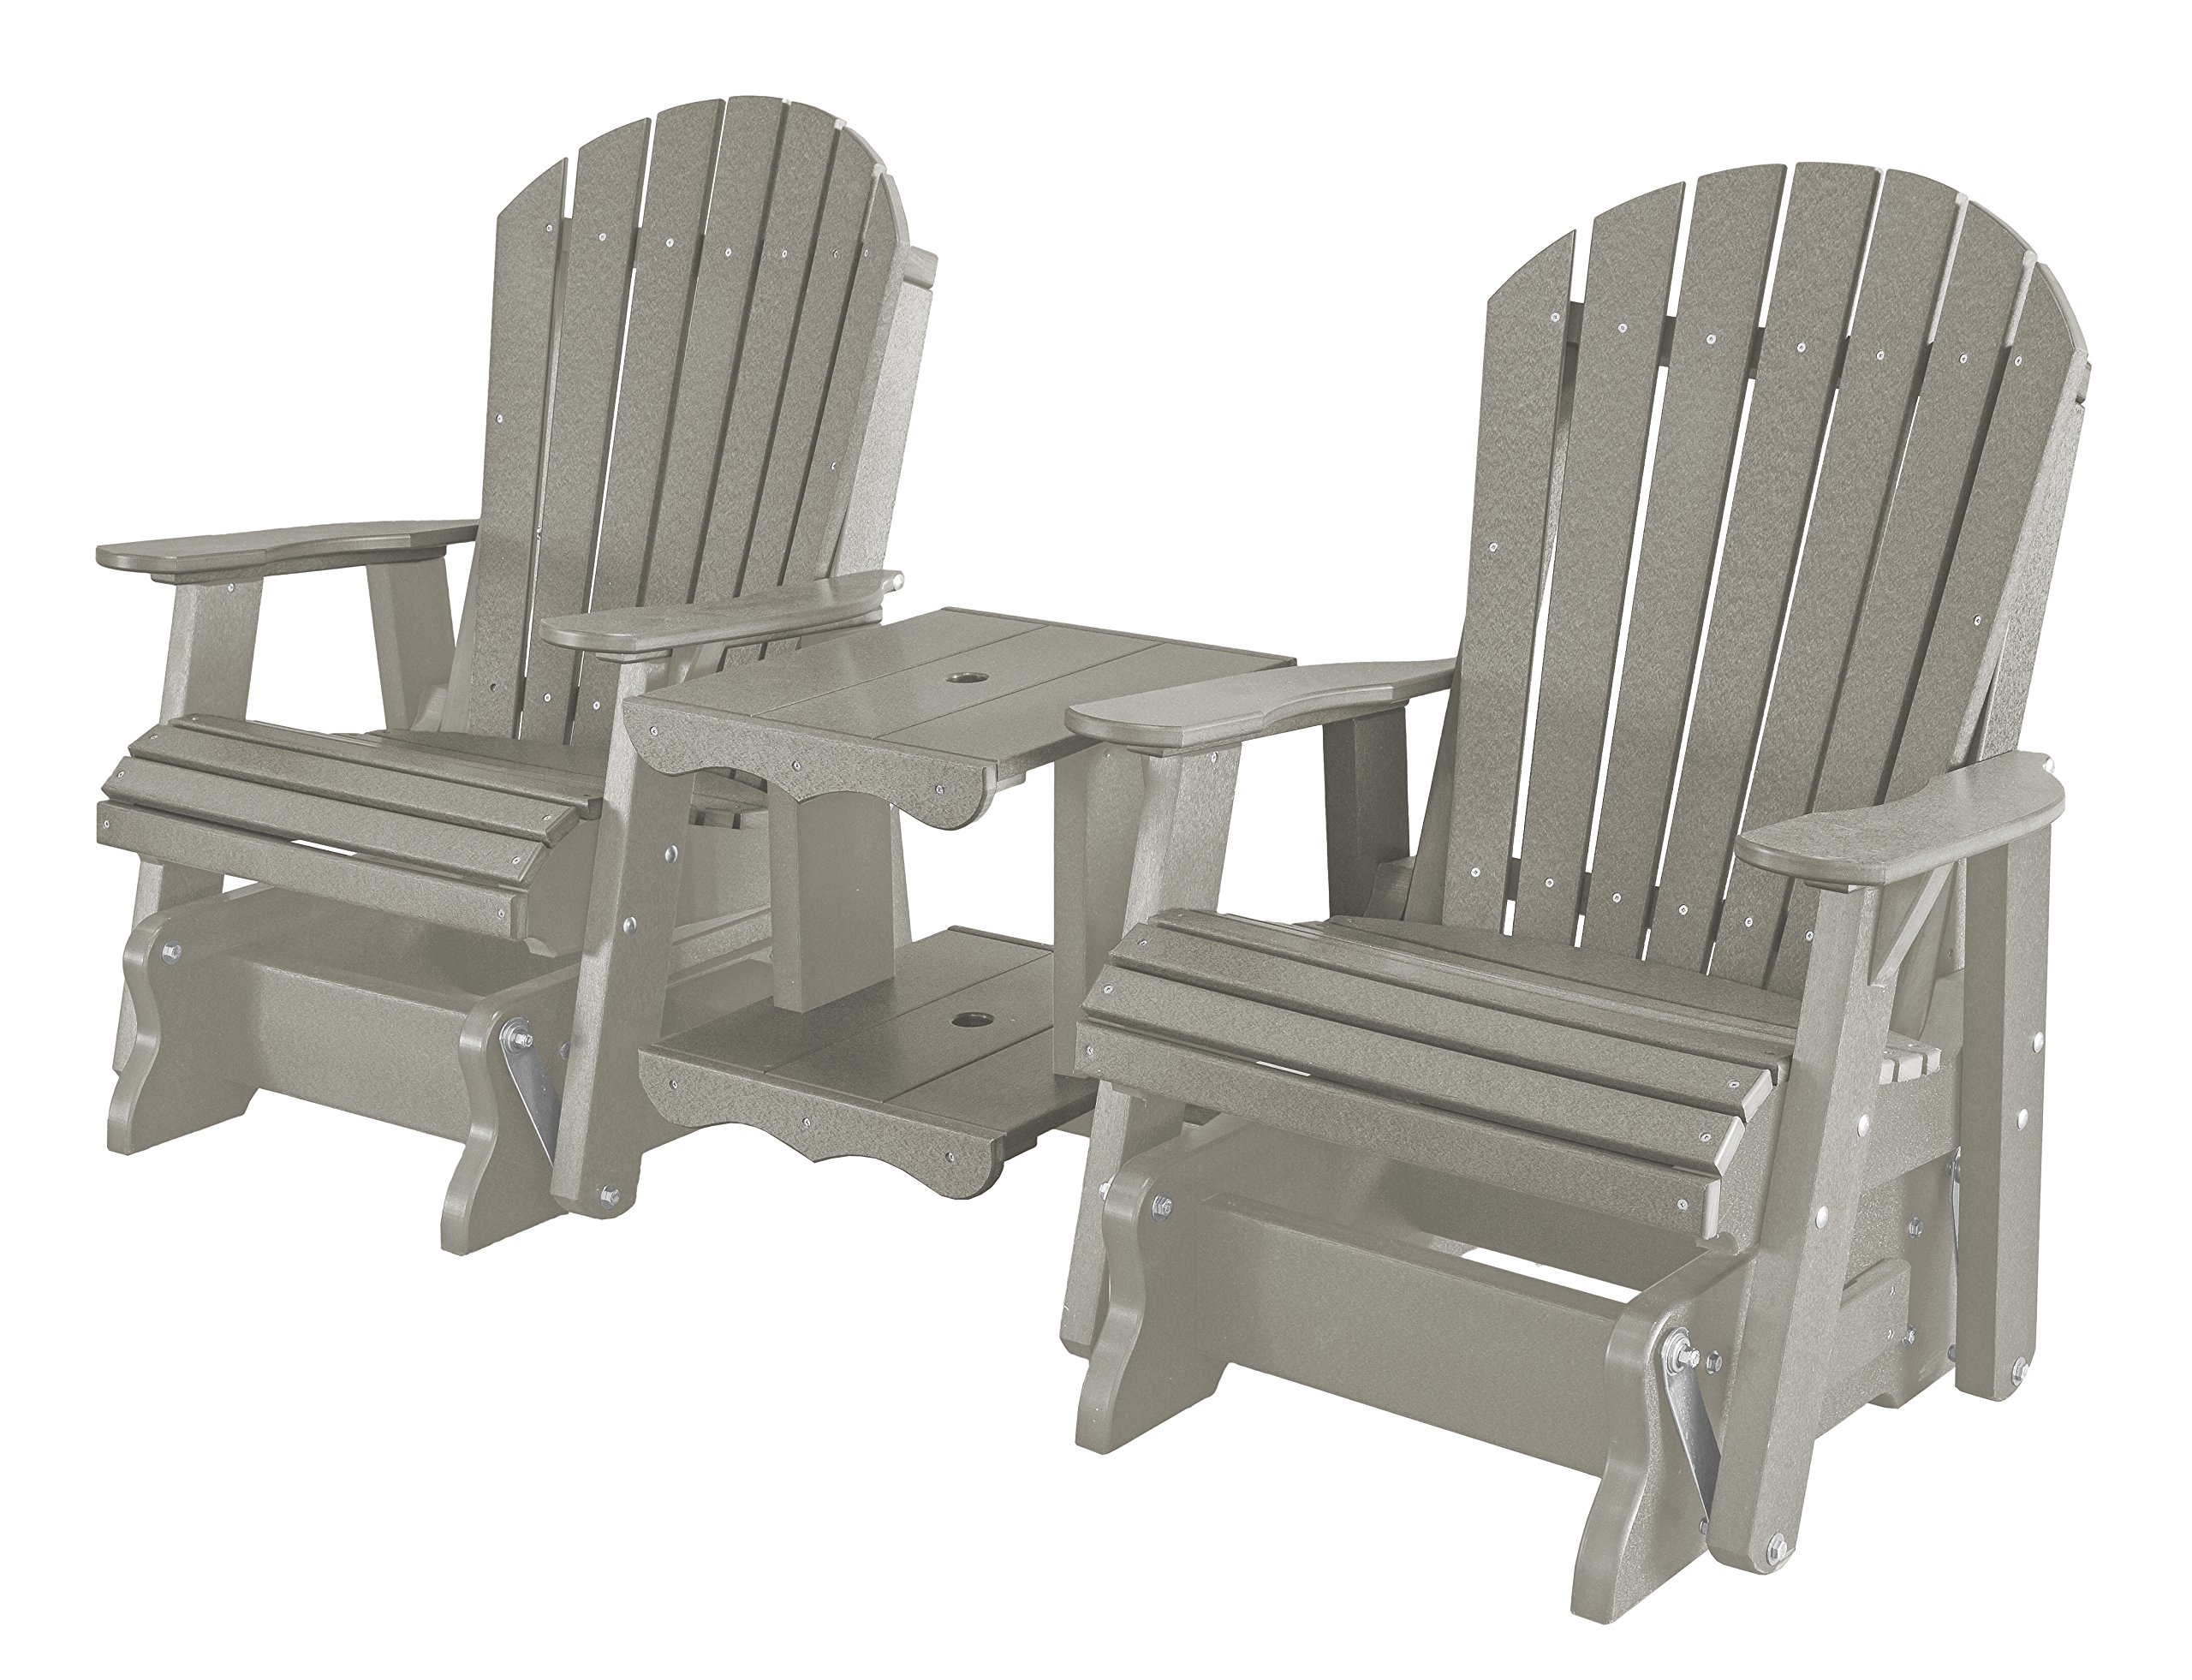 Little Cottage Company Heritage Double Rock-a-tee, Light Gray